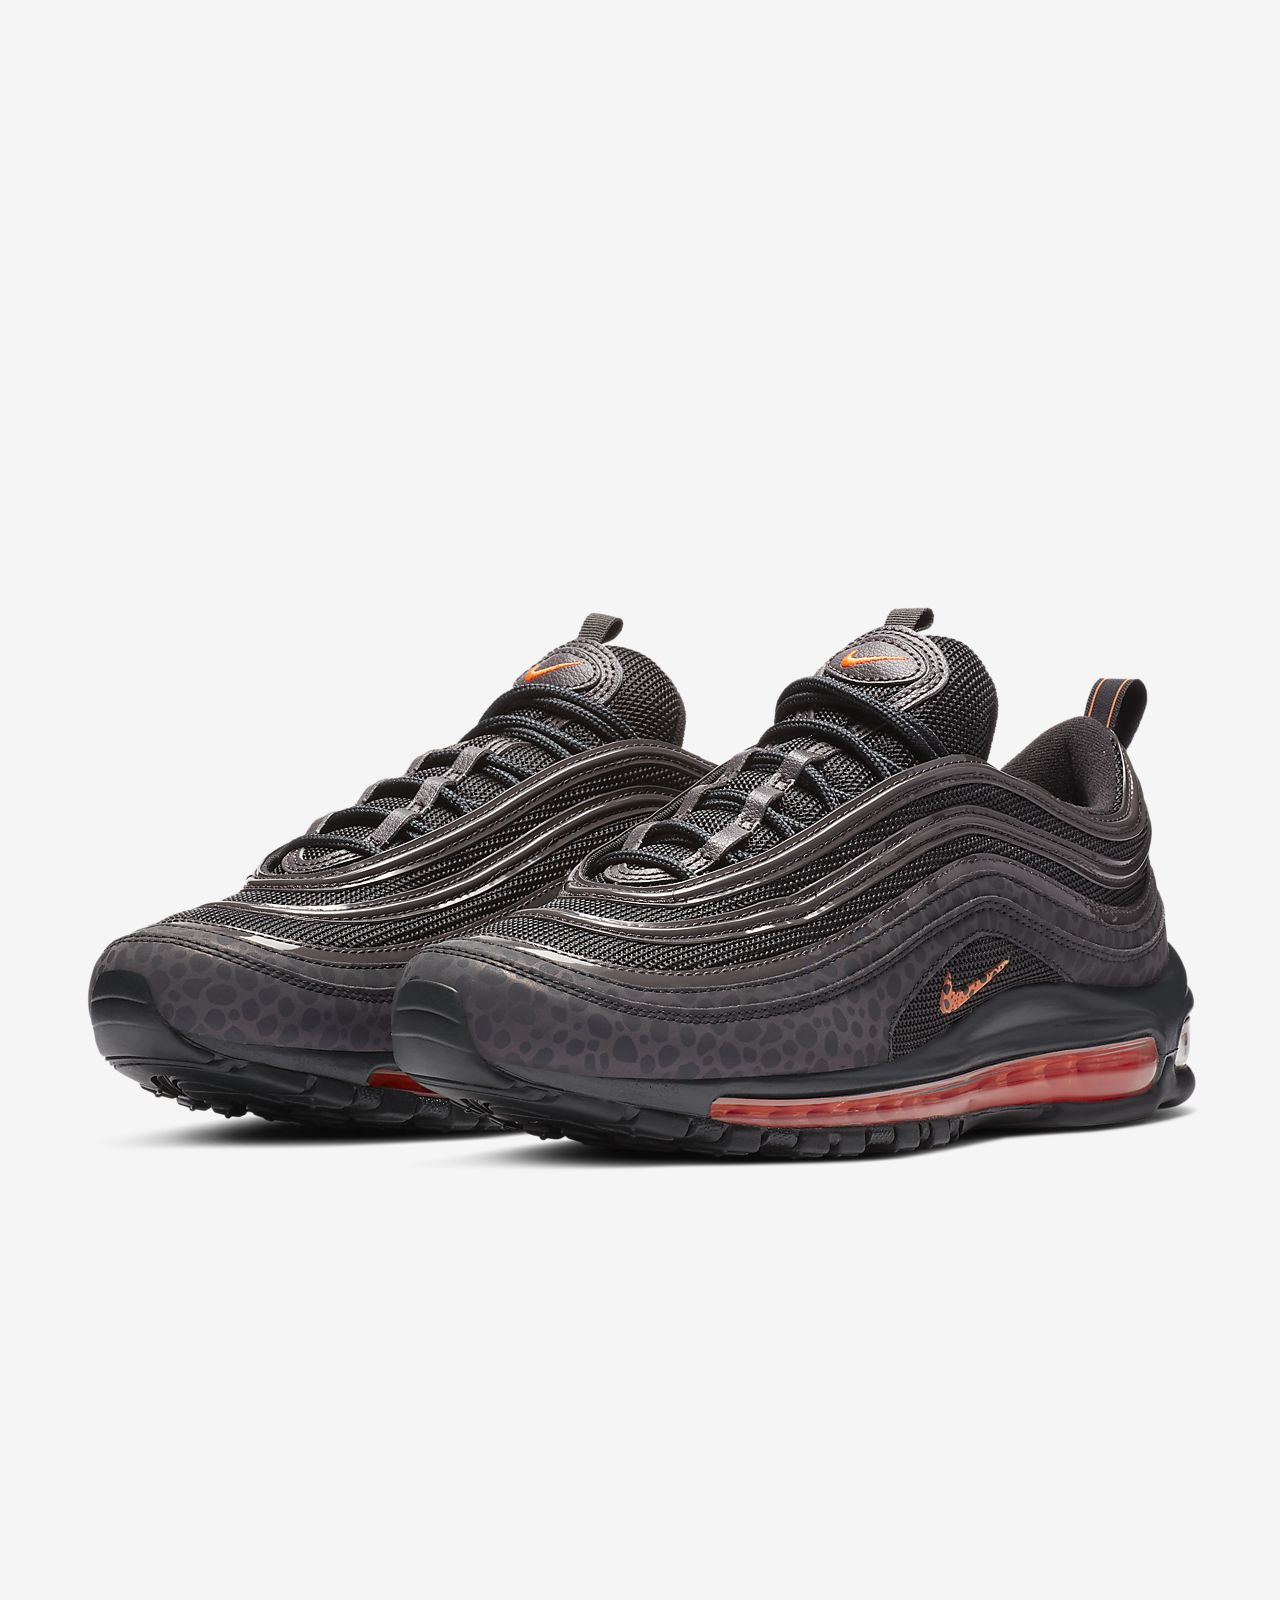 2dcb8ea0ad Nike Air Max 97 SE Reflective Men's Shoe. Nike.com AU